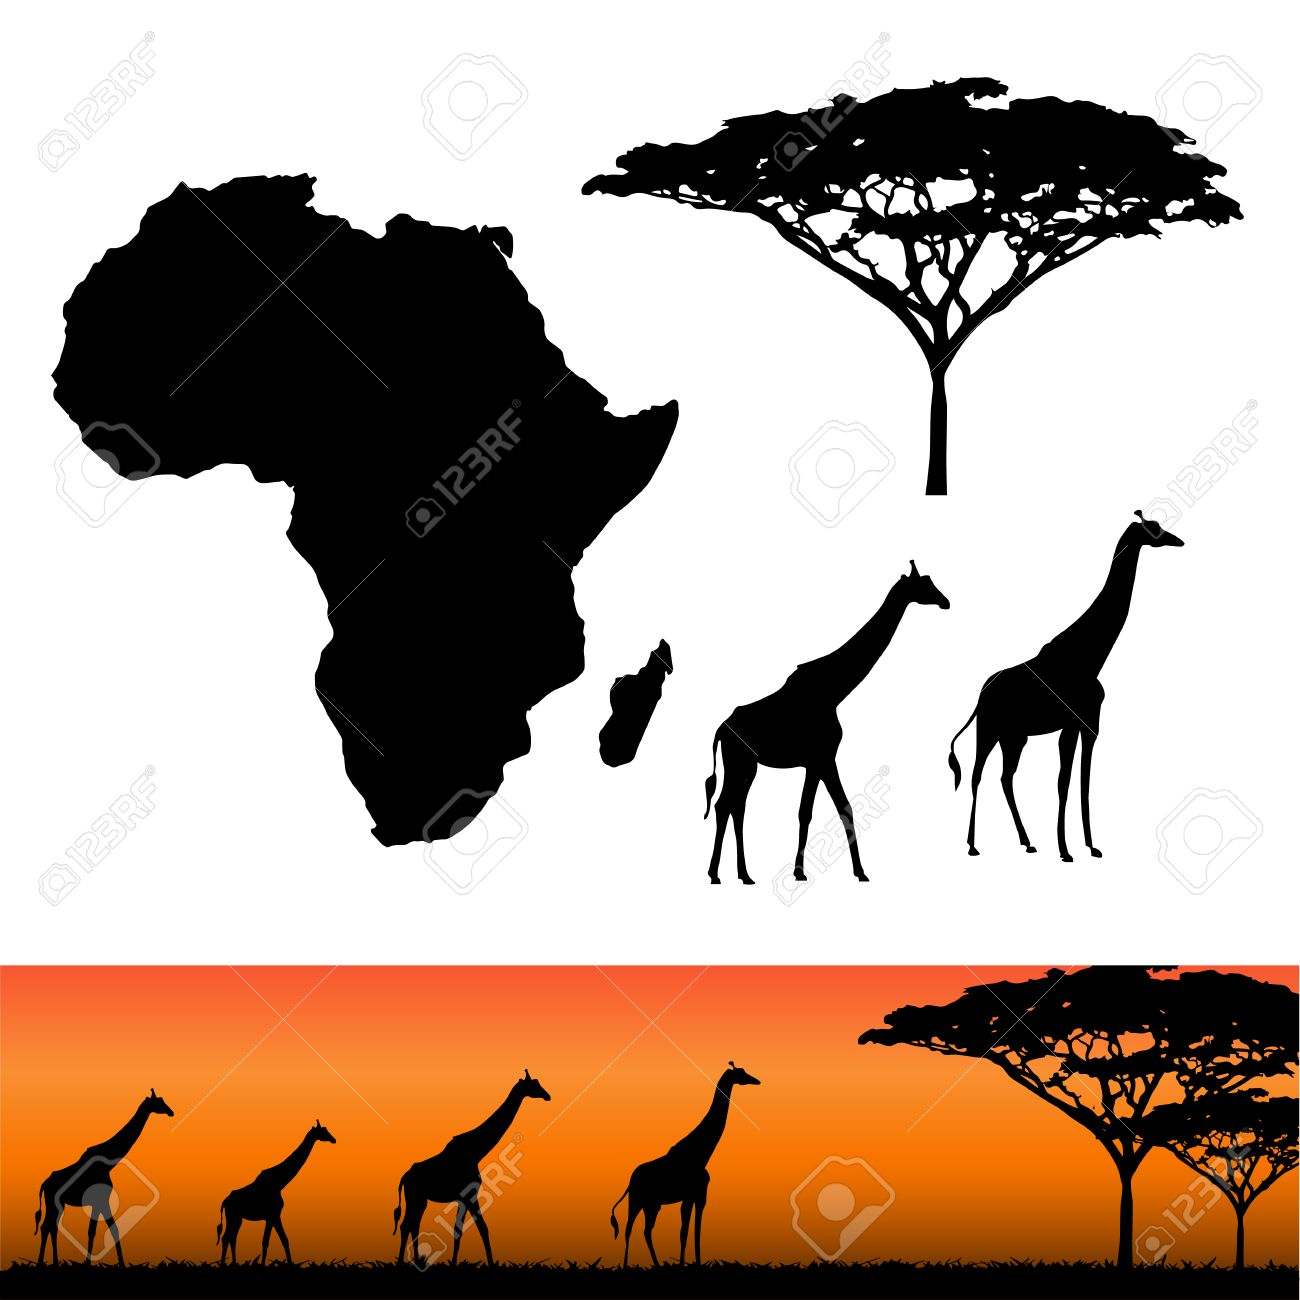 Map of Africa. Africa and Safari elements. African animals, giraffe, vector silhouettes. Panels of african silhouettes with african giraffes. Vector illustration - 54699308